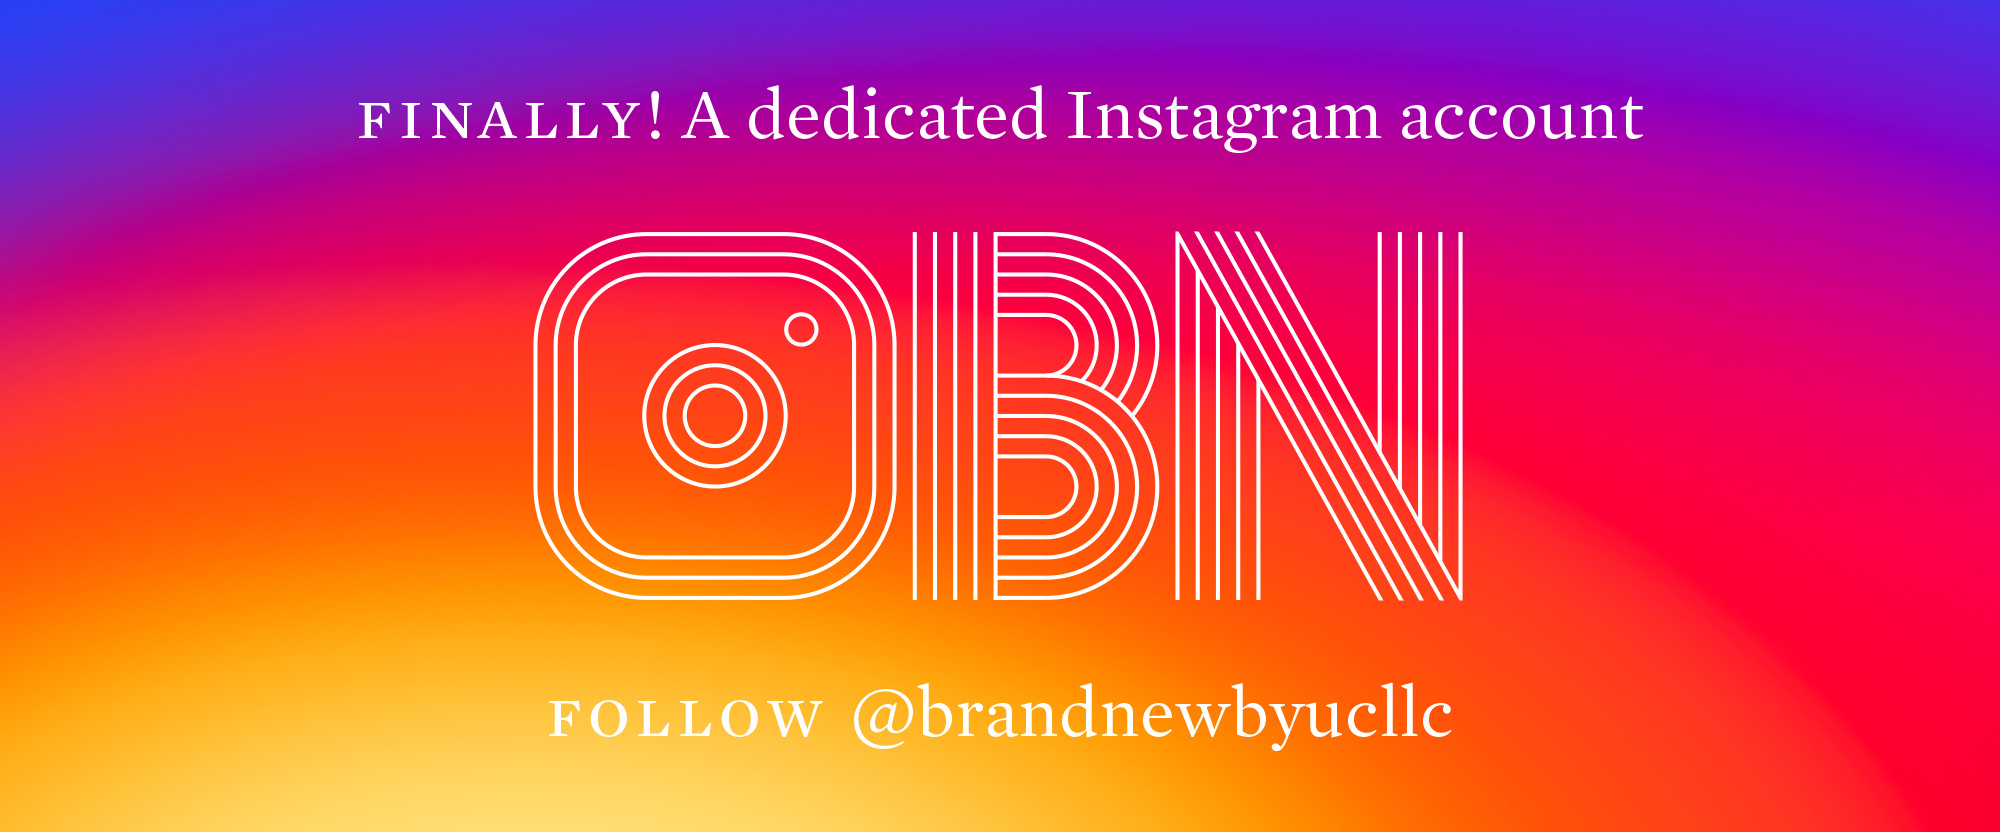 Finally, a Dedicated Instagram Account!